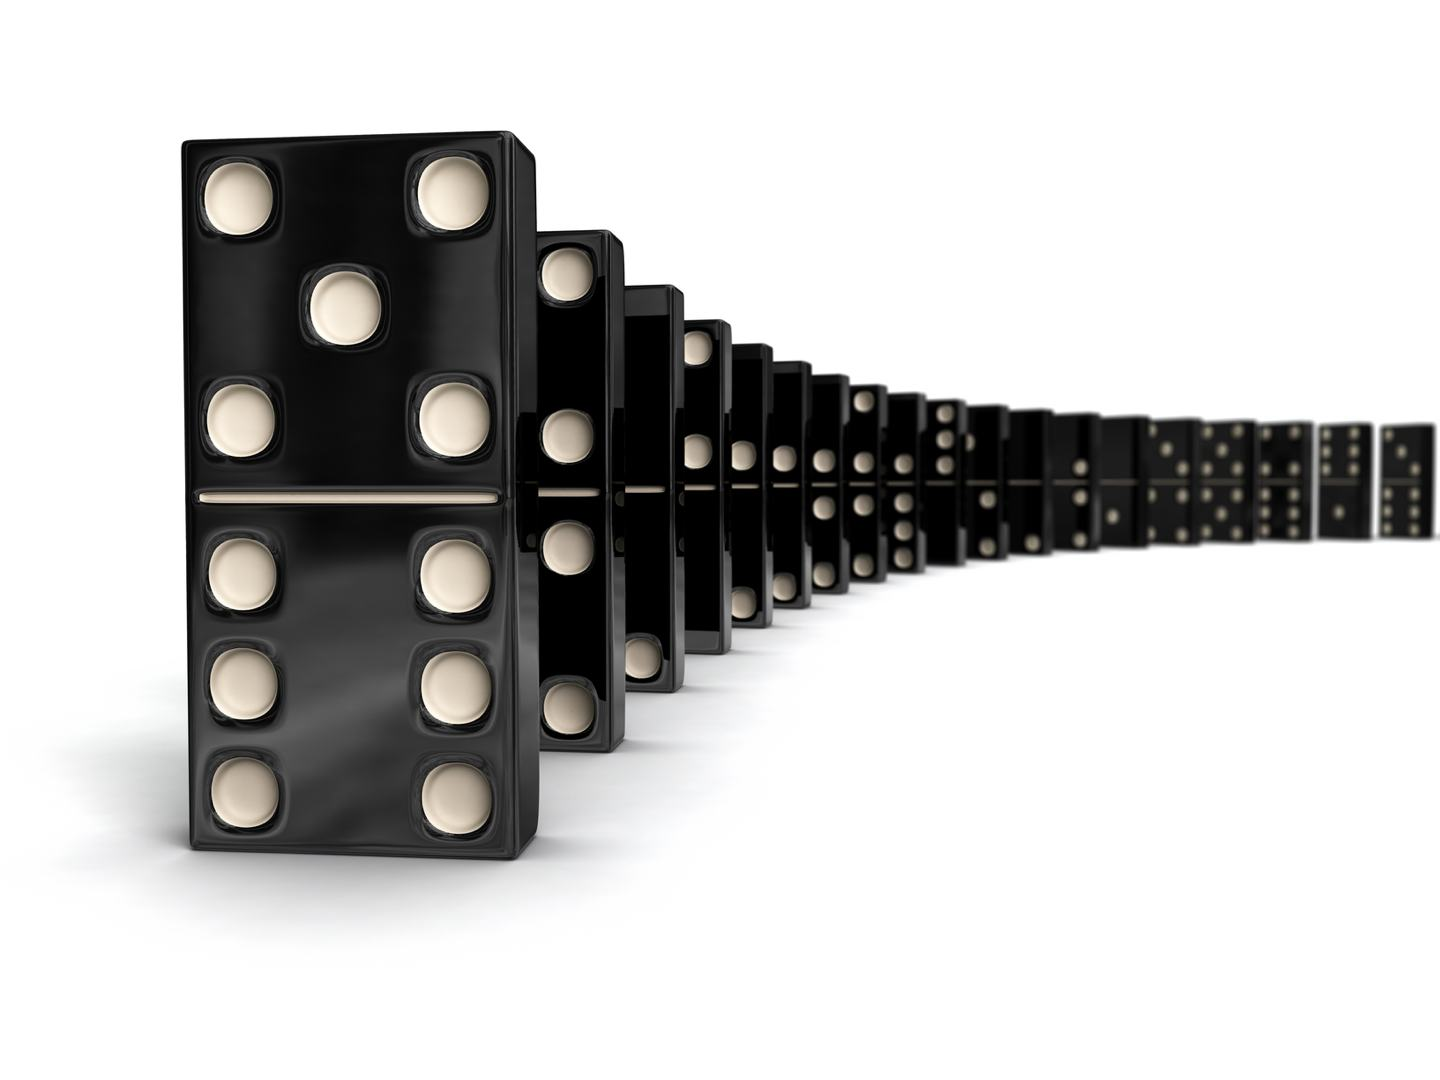 Dominoes Falling Wallpaper The Power Of The Domino Effect By Amanda Johnson